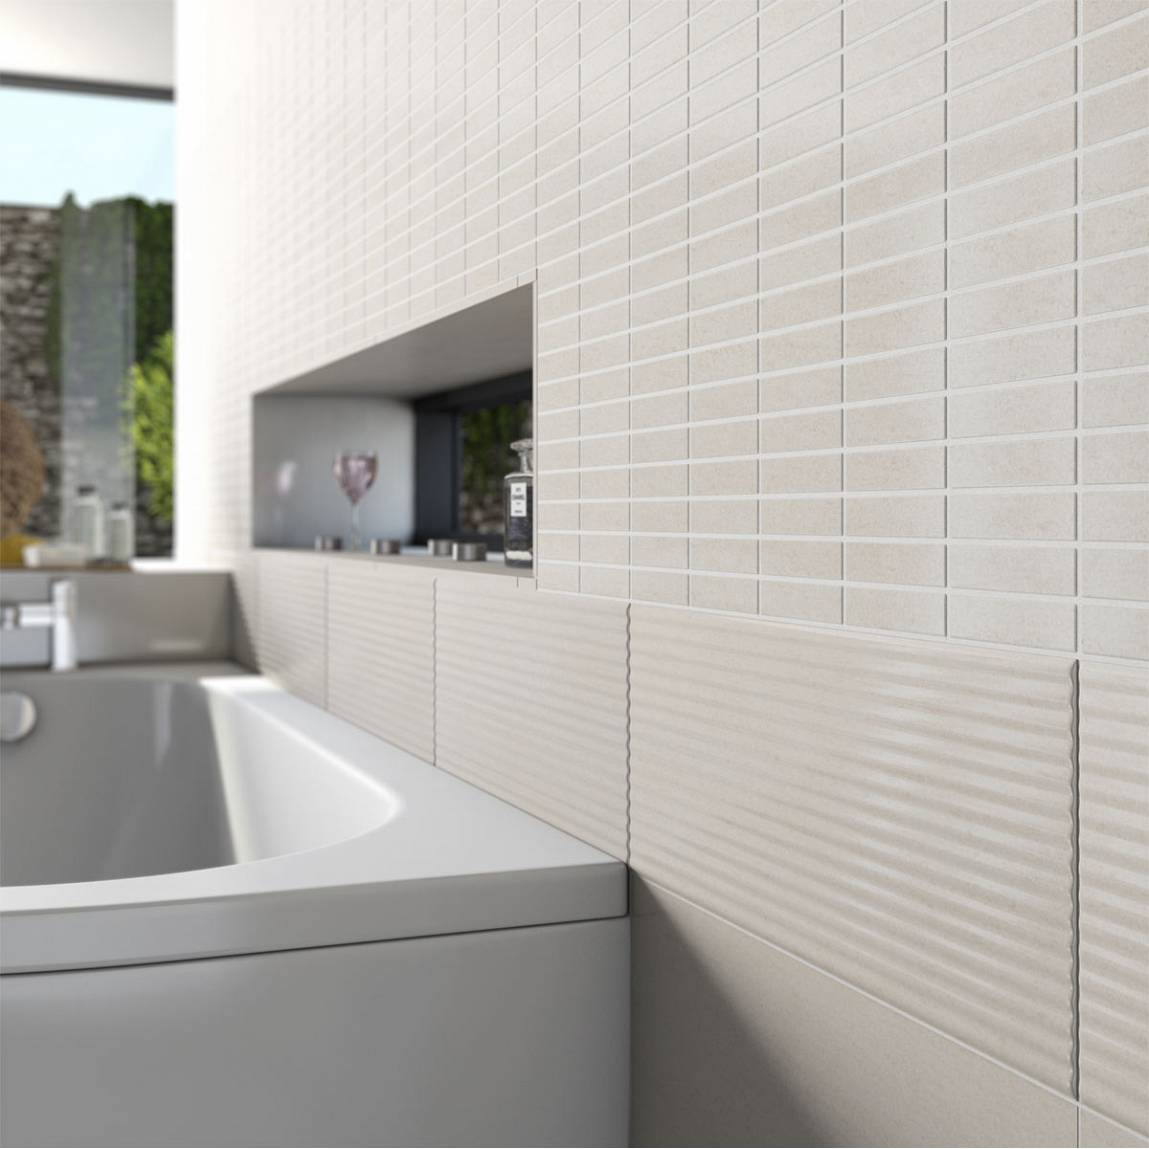 How To Do Wall Tile In Bathroom: Choosing Bathroom Tiles